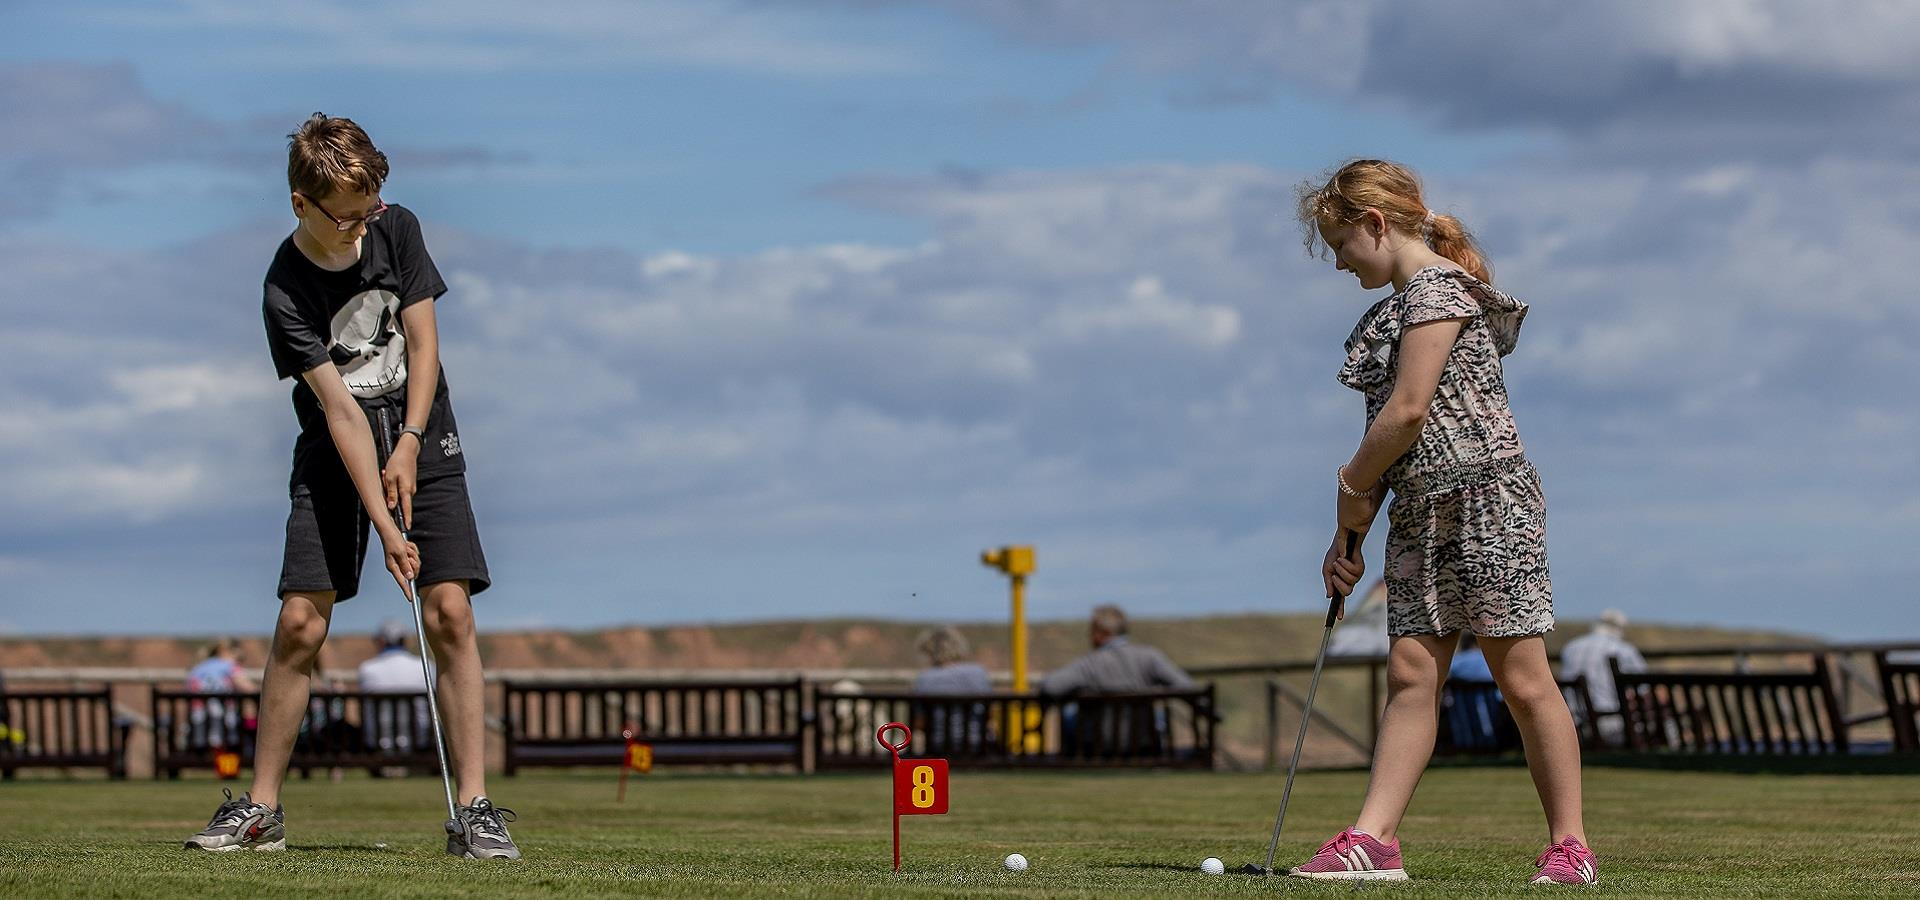 Mini Golf in Filey by Charlotte Graham